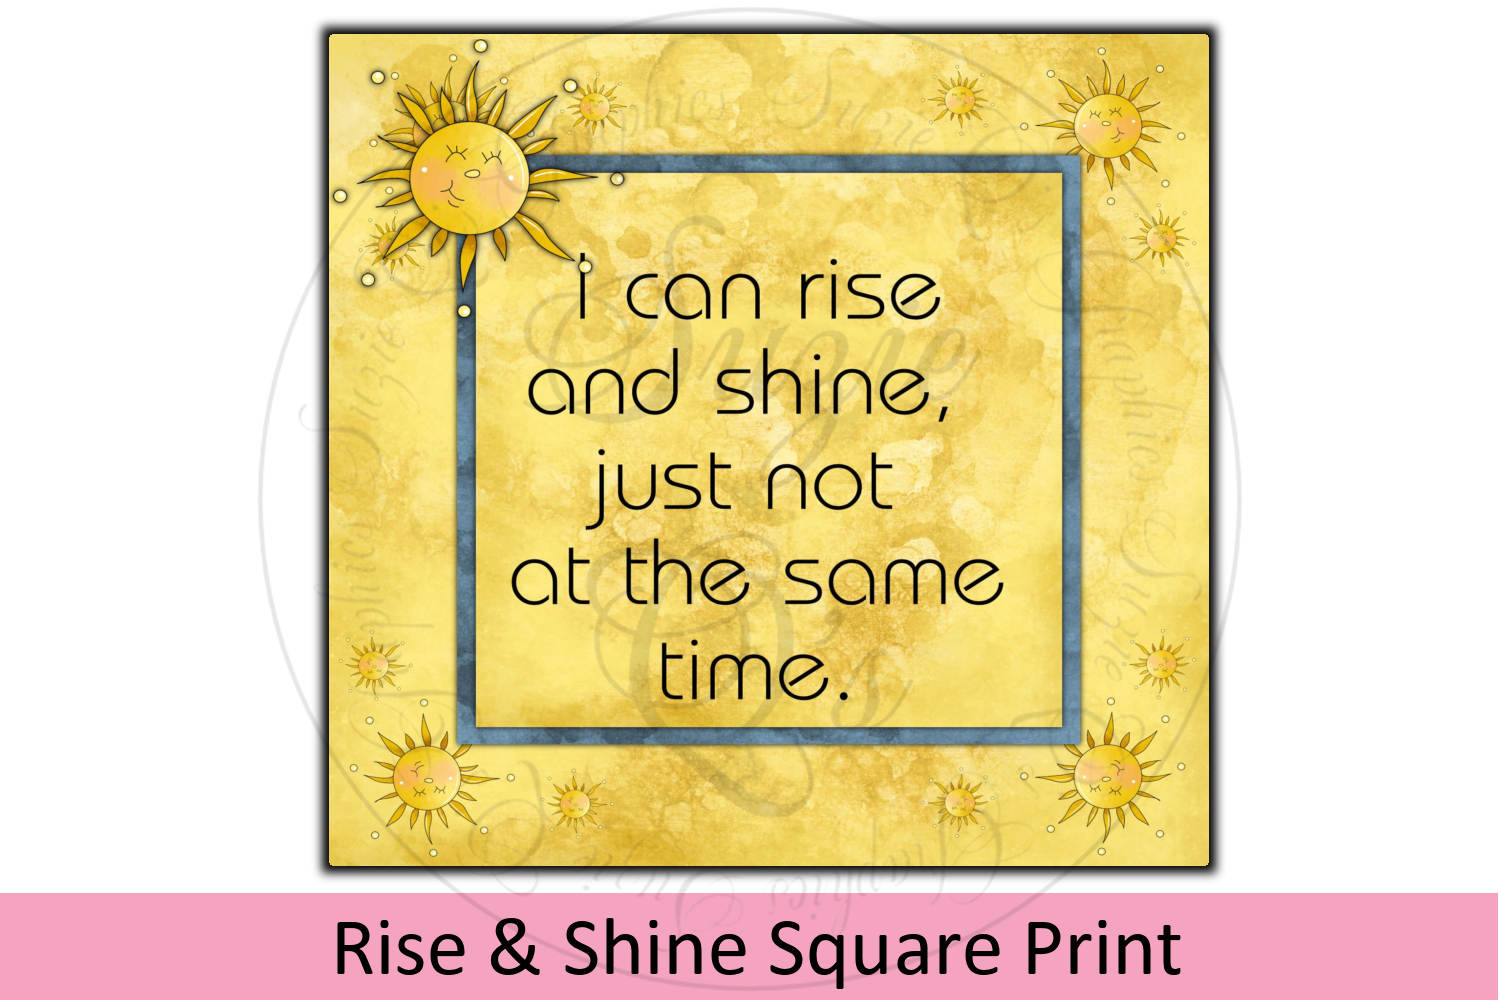 Rise and Shine Square Print example image 1